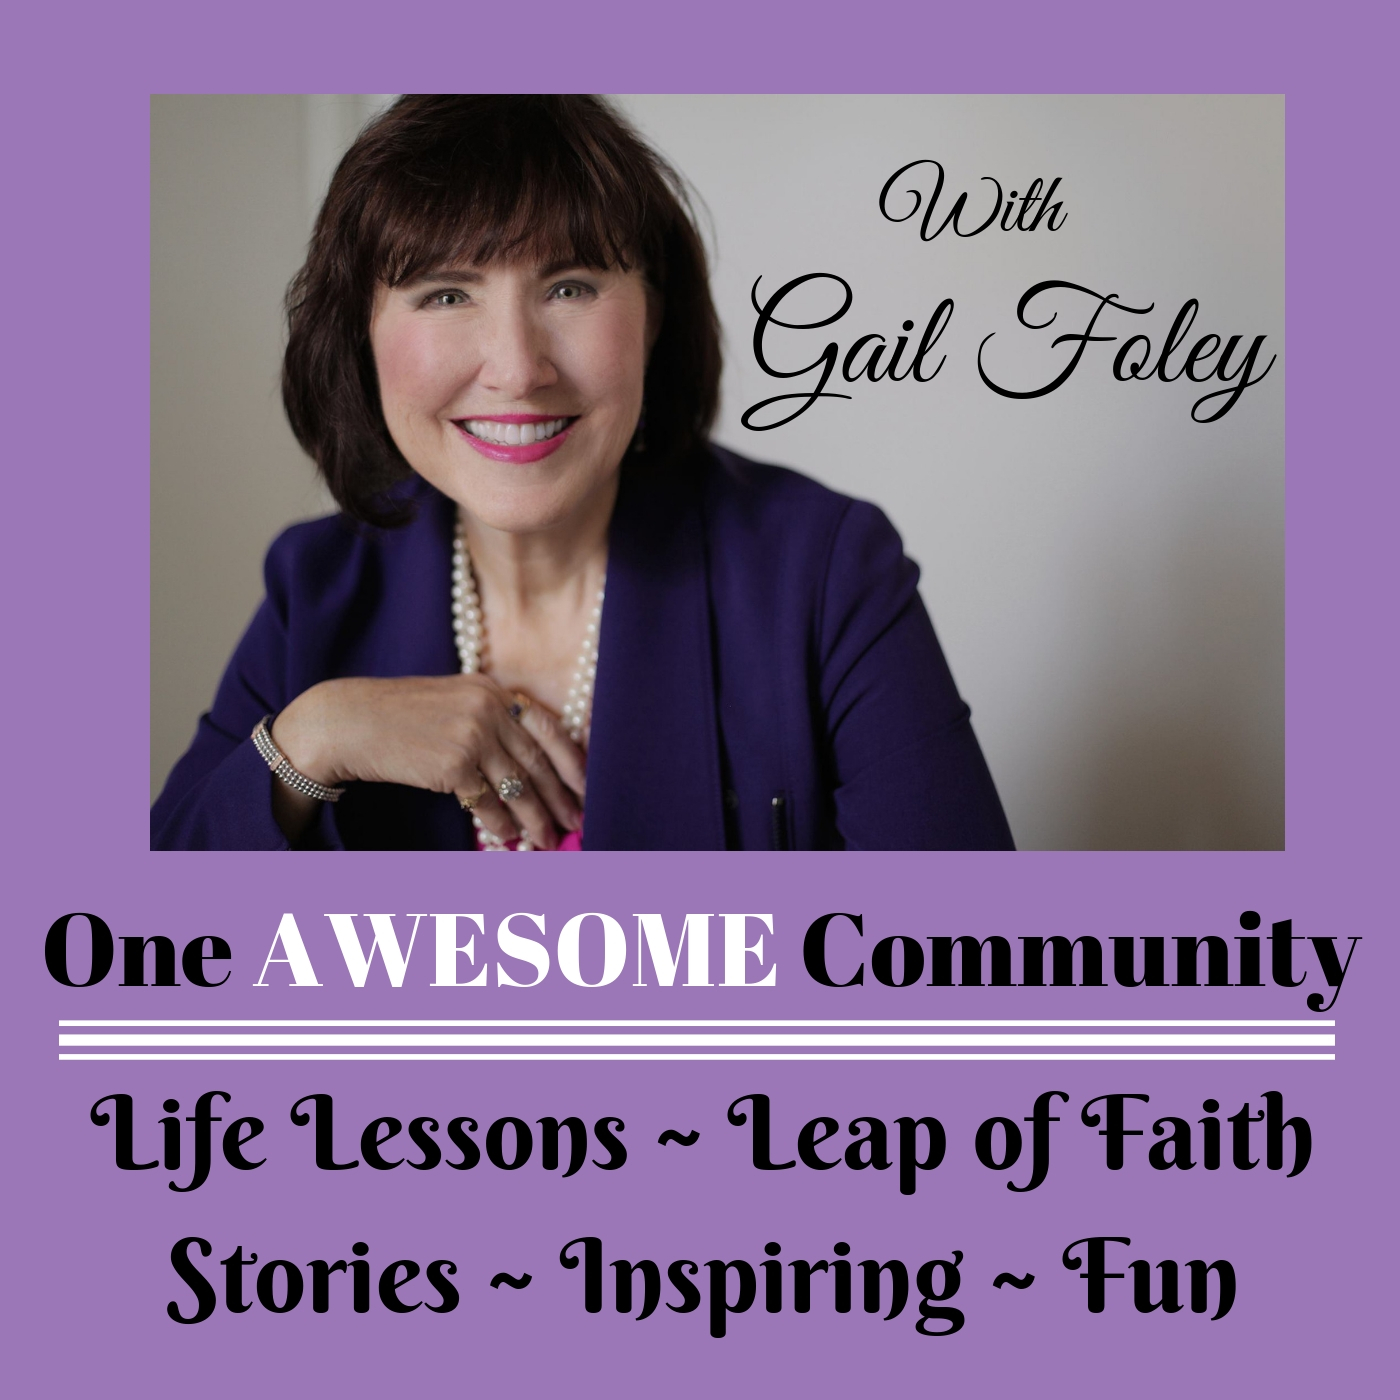 One Awesome Community: Women Entrepreneurs Host Gail Foley | Motivation | Inspiration | Success Tips | Expert Interviews|